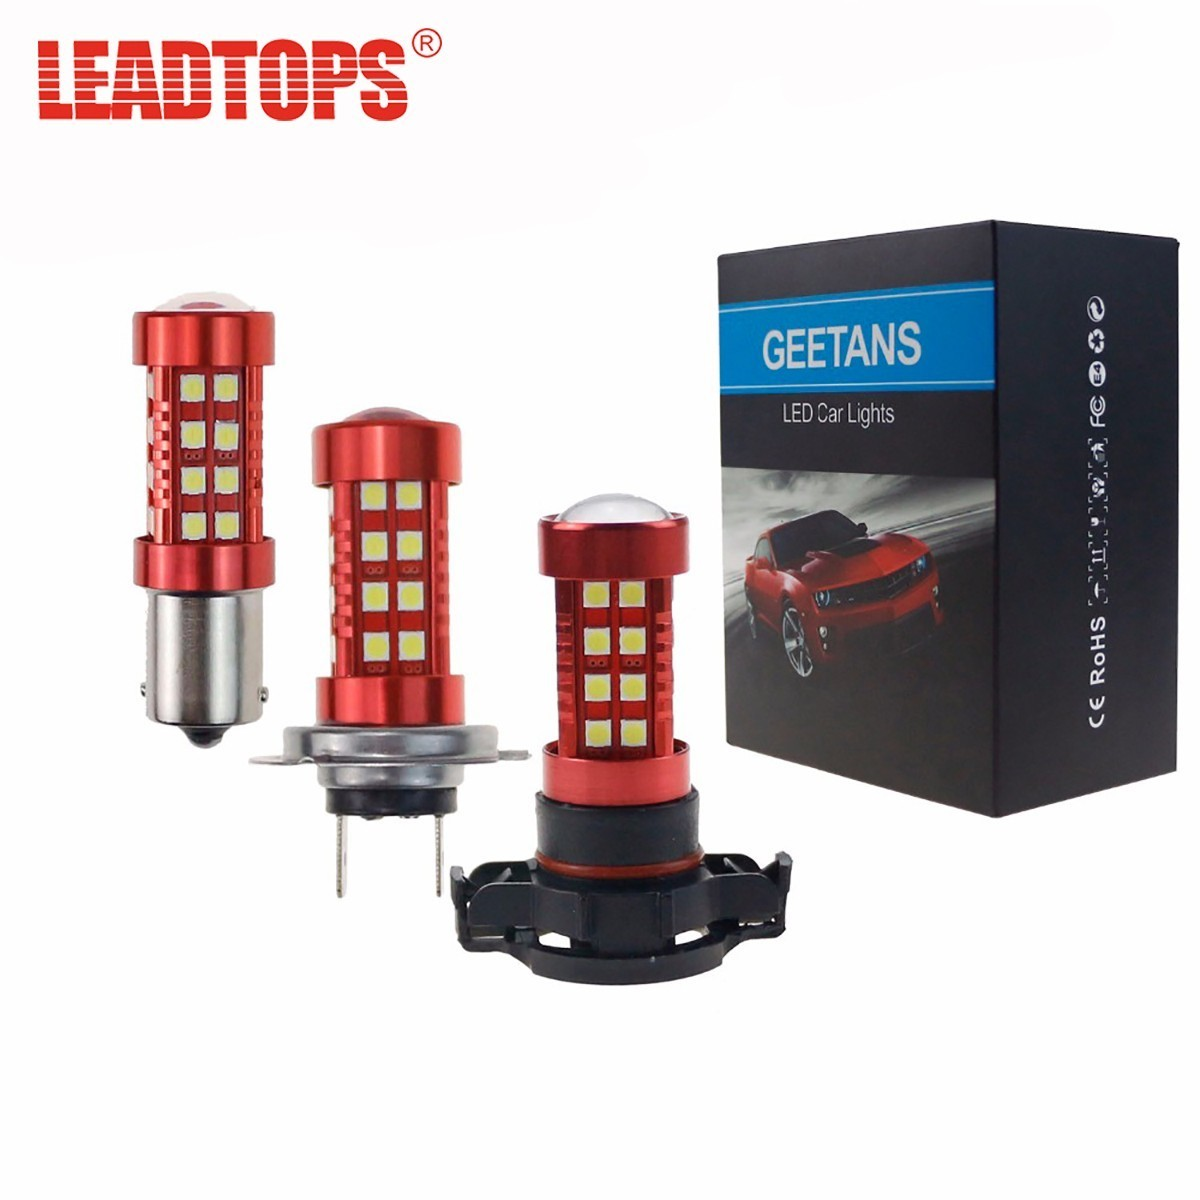 LEADTOPS Car Light Assembly LED H11 DRL Fog Lights LED 9005 9006 H10 H1 H4 H7 1156 H11 Lamps 6000k Super Bright White Bulb CJ 1pc 1156 ba15s 1206 22smd white led brake turn light auto mobile wedge lamp tail bulb super bright dc 12v csl2017